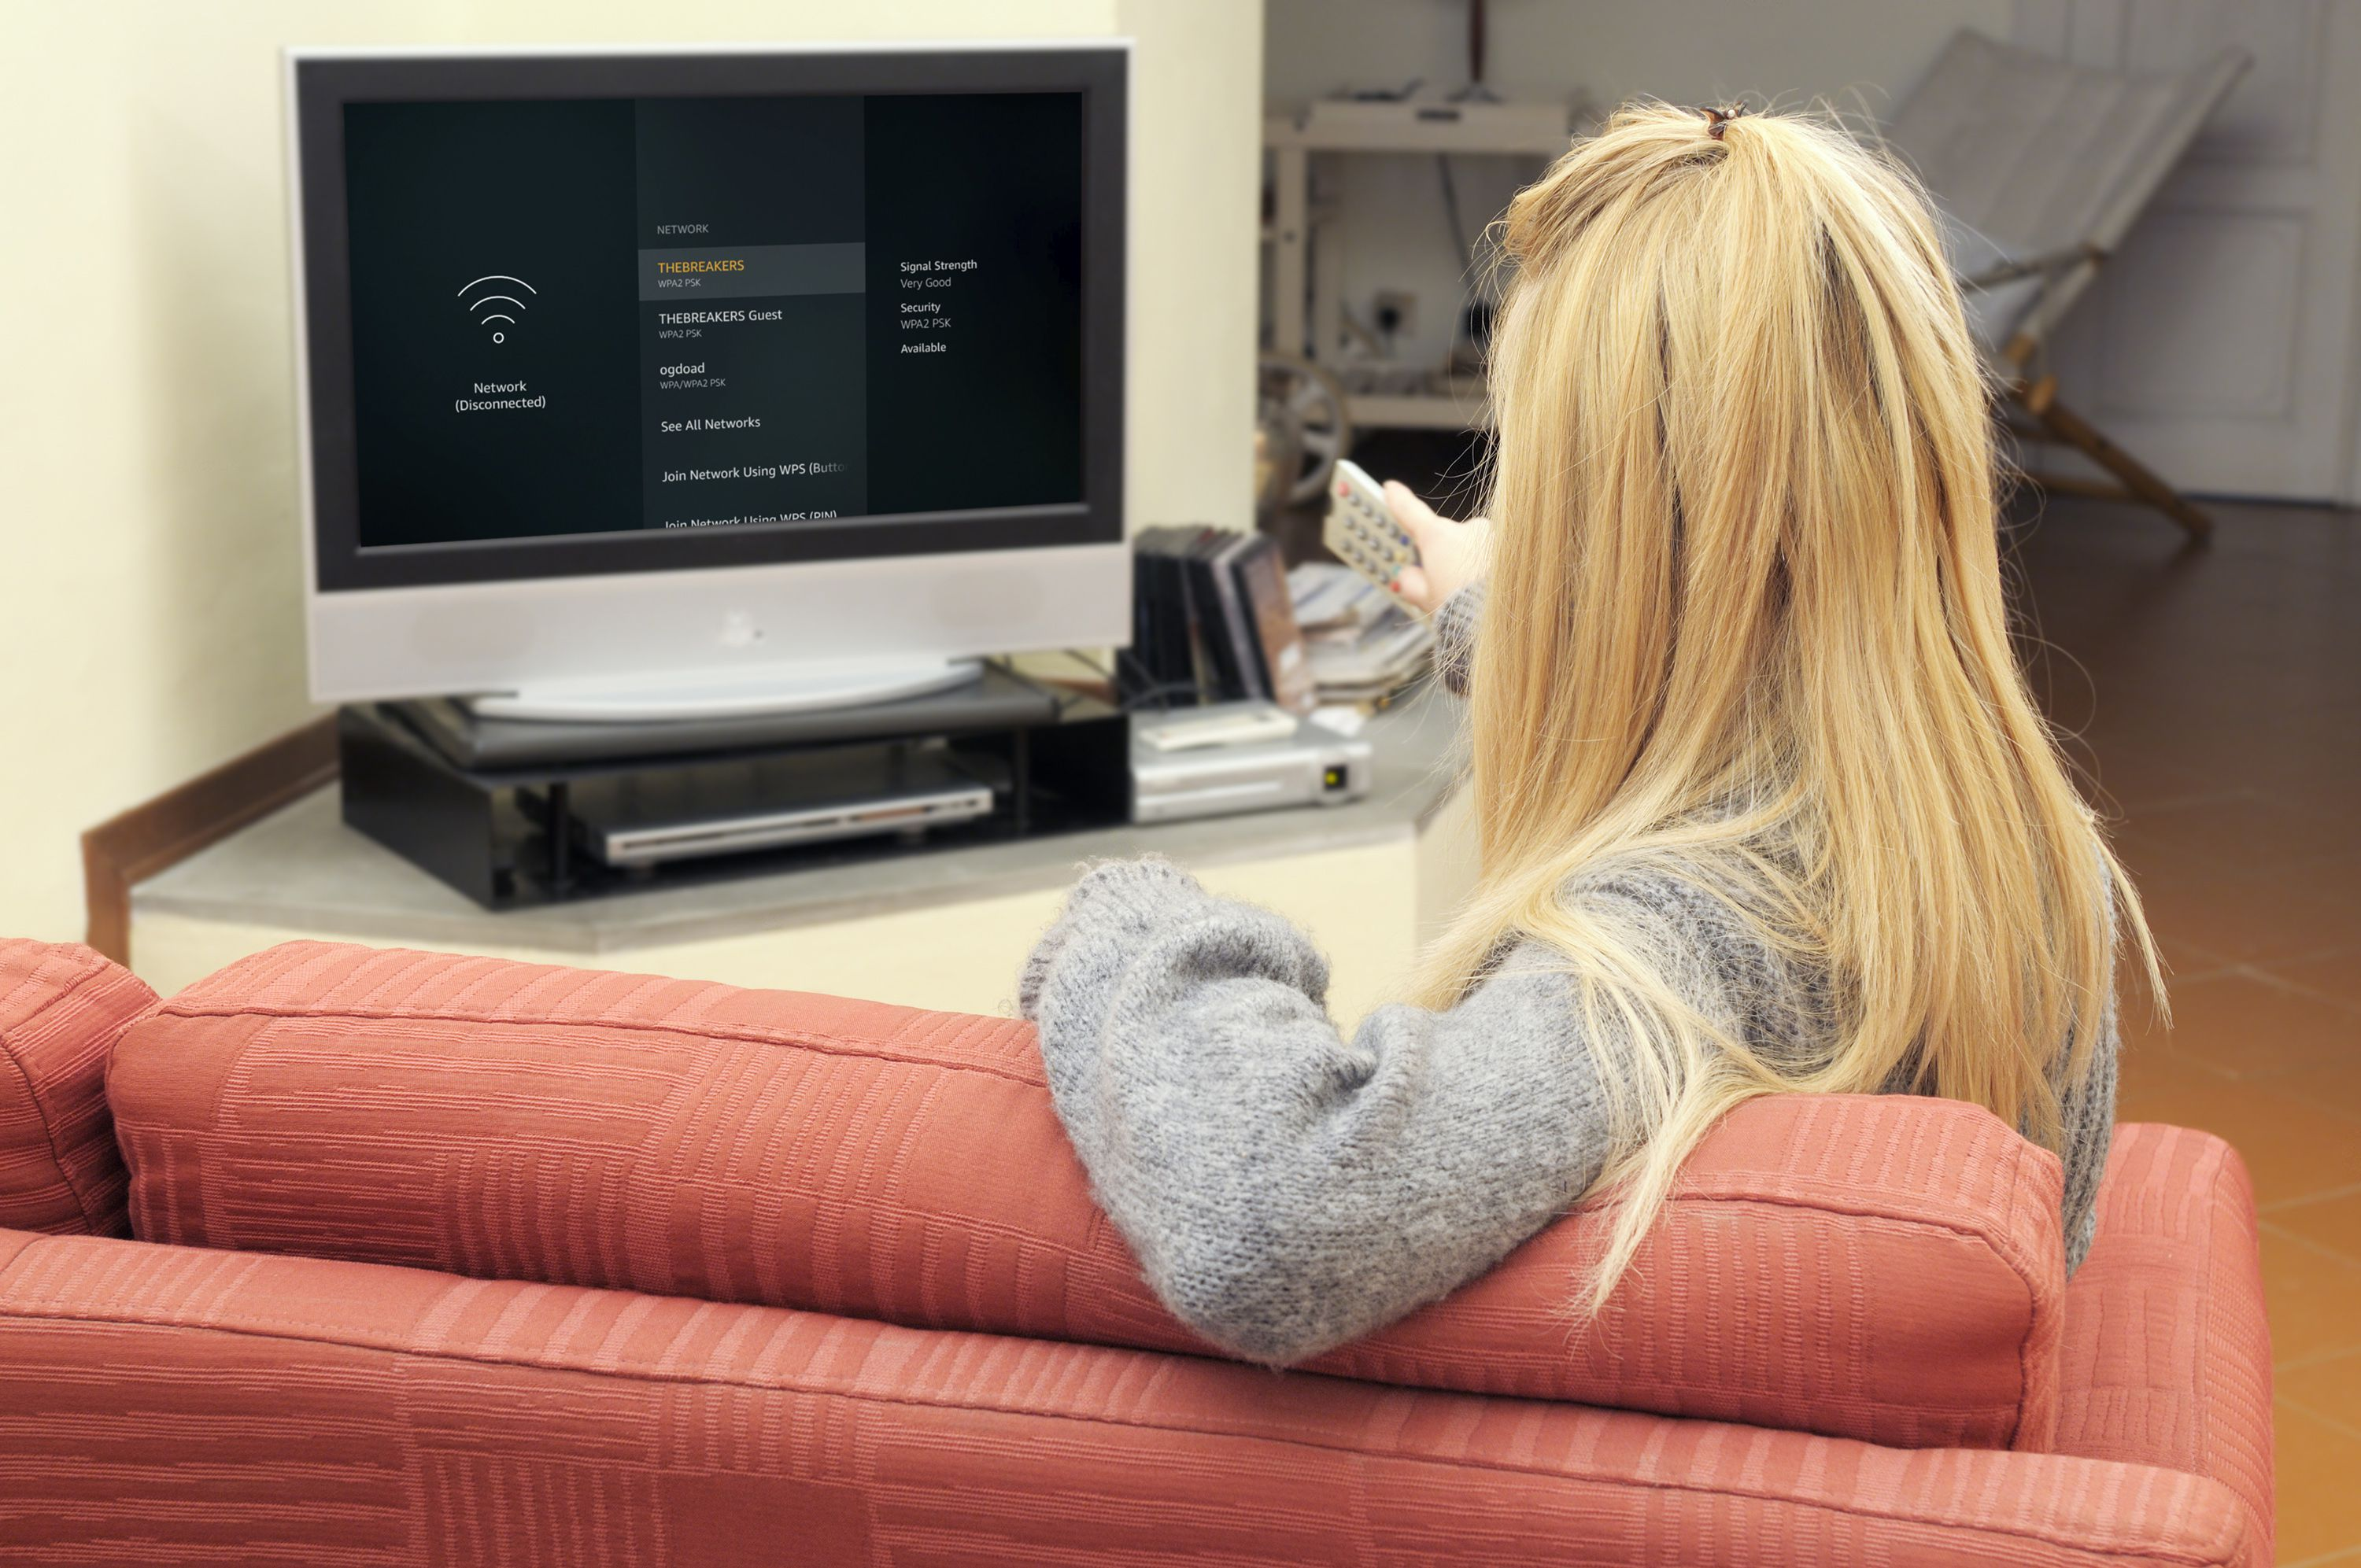 How to Connect a Fire Stick to Wi-Fi